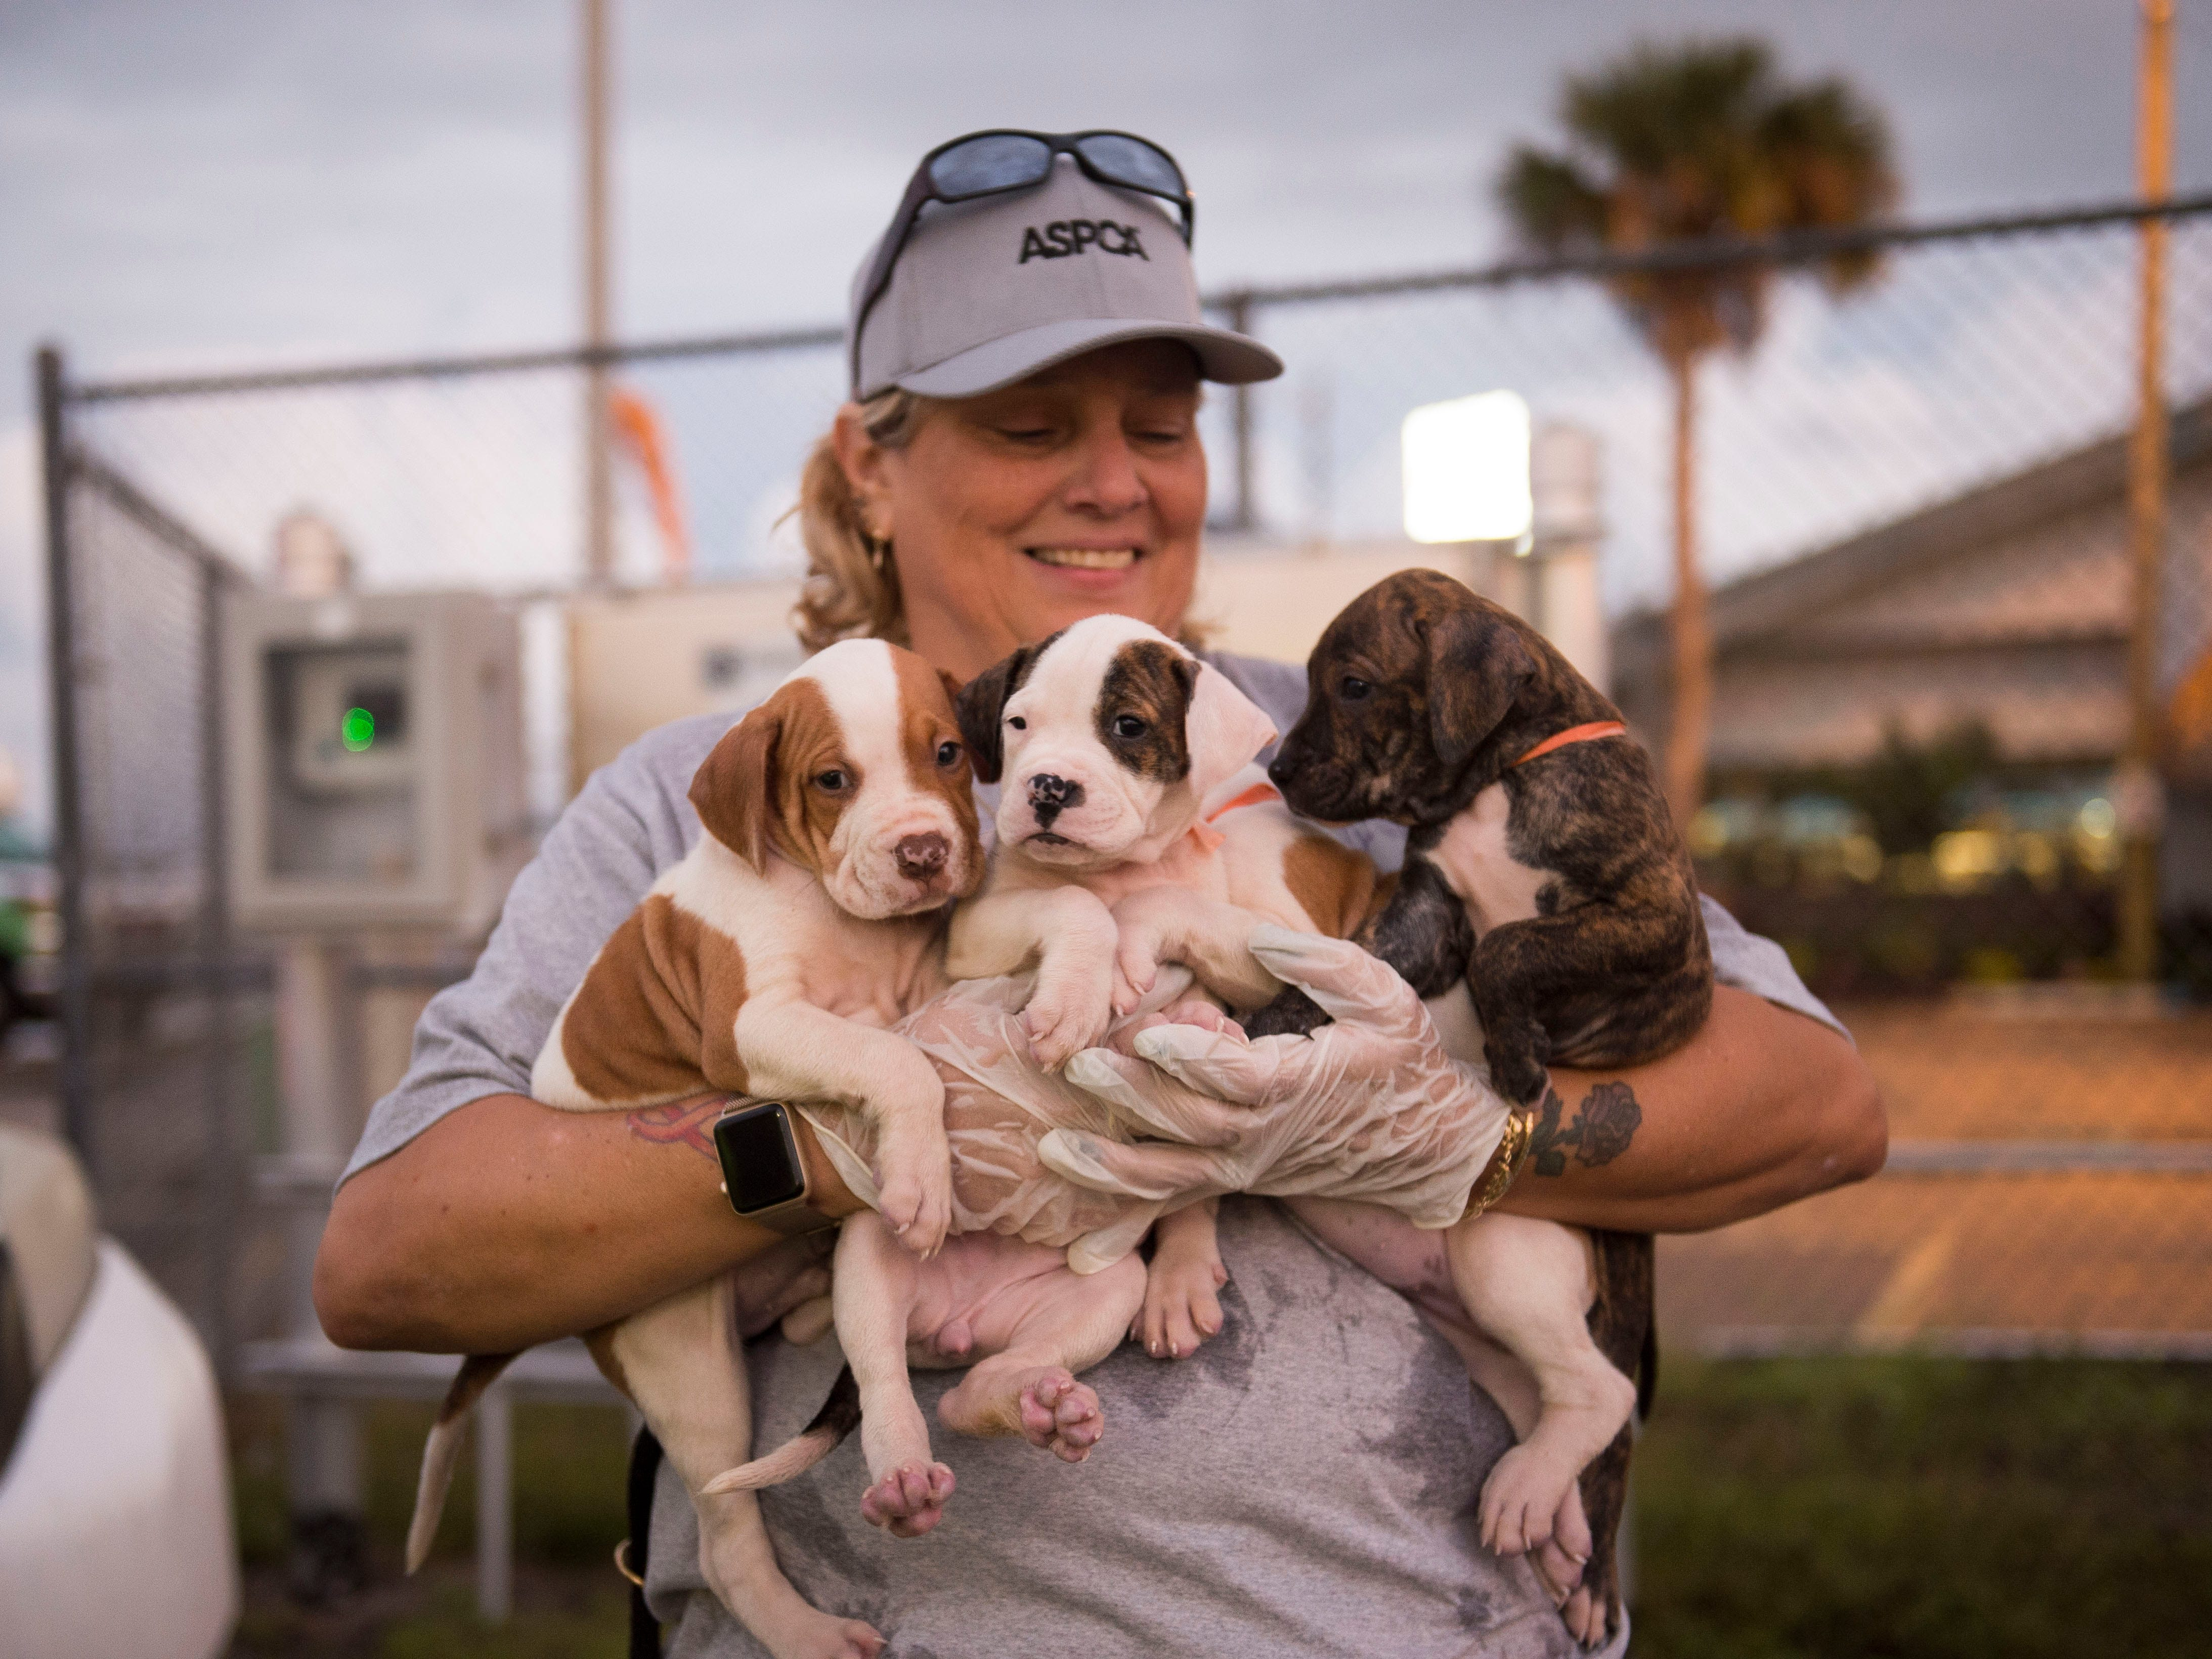 """Kelly Koch, a volunteer from Vero Beach, comforts four mixed breed puppies as about 200 dogs and cats displaced from hurricanes Irma and Maria were delivered from the Caribbean islands St. John, St. Thomas, Tortola and Puerto Rico on Jan. 10, 2018, to the Treasure Coast International Airport in Fort Pierce. Big Dog Ranch Rescue, based in Palm Beach County, facilitated the trip, their eleventh since the storms. """"We're just doing everything we can to get them to safety,"""" said ranch president Lauree Simmons. """"They were literally living on streets,"""" Simmons said. About 100 animals were distributed to Florida organizations Big Dog Ranch Rescue, Pet Alliance of Greater Orlando and Ravenwood Farm Foundation and Sanctuary near Jacksonville, while the rest were sent to other rescues across the country."""